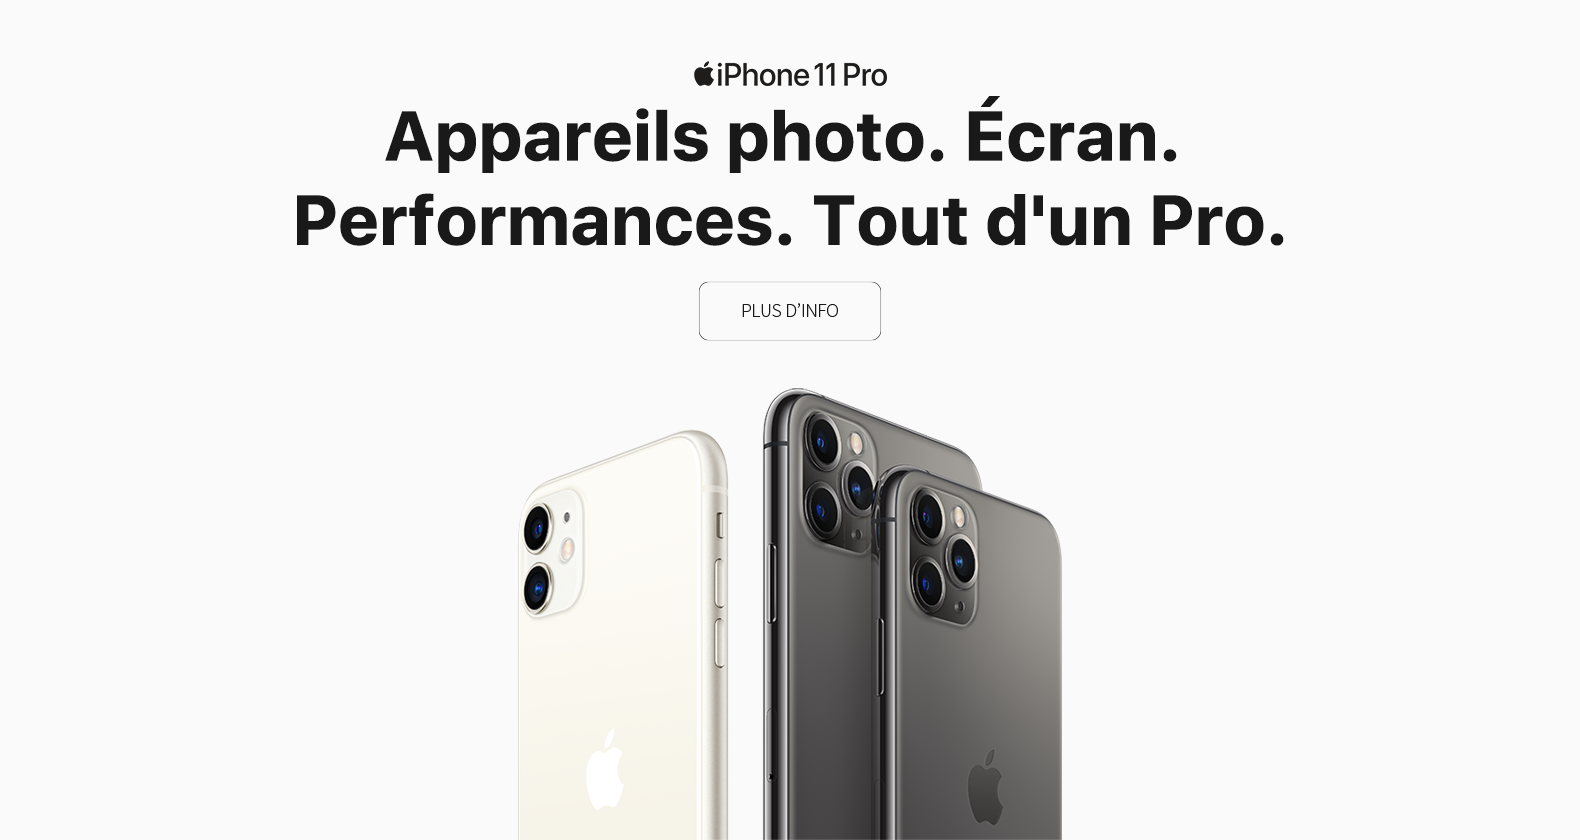 iPhone11Pro-visual-2-3-fr.png